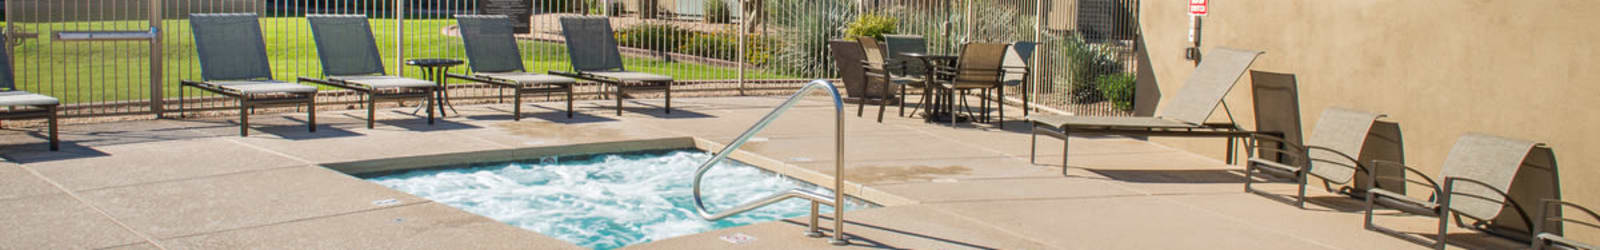 Pet friendly at Las Colinas at Black Canyon in Phoenix, Arizona